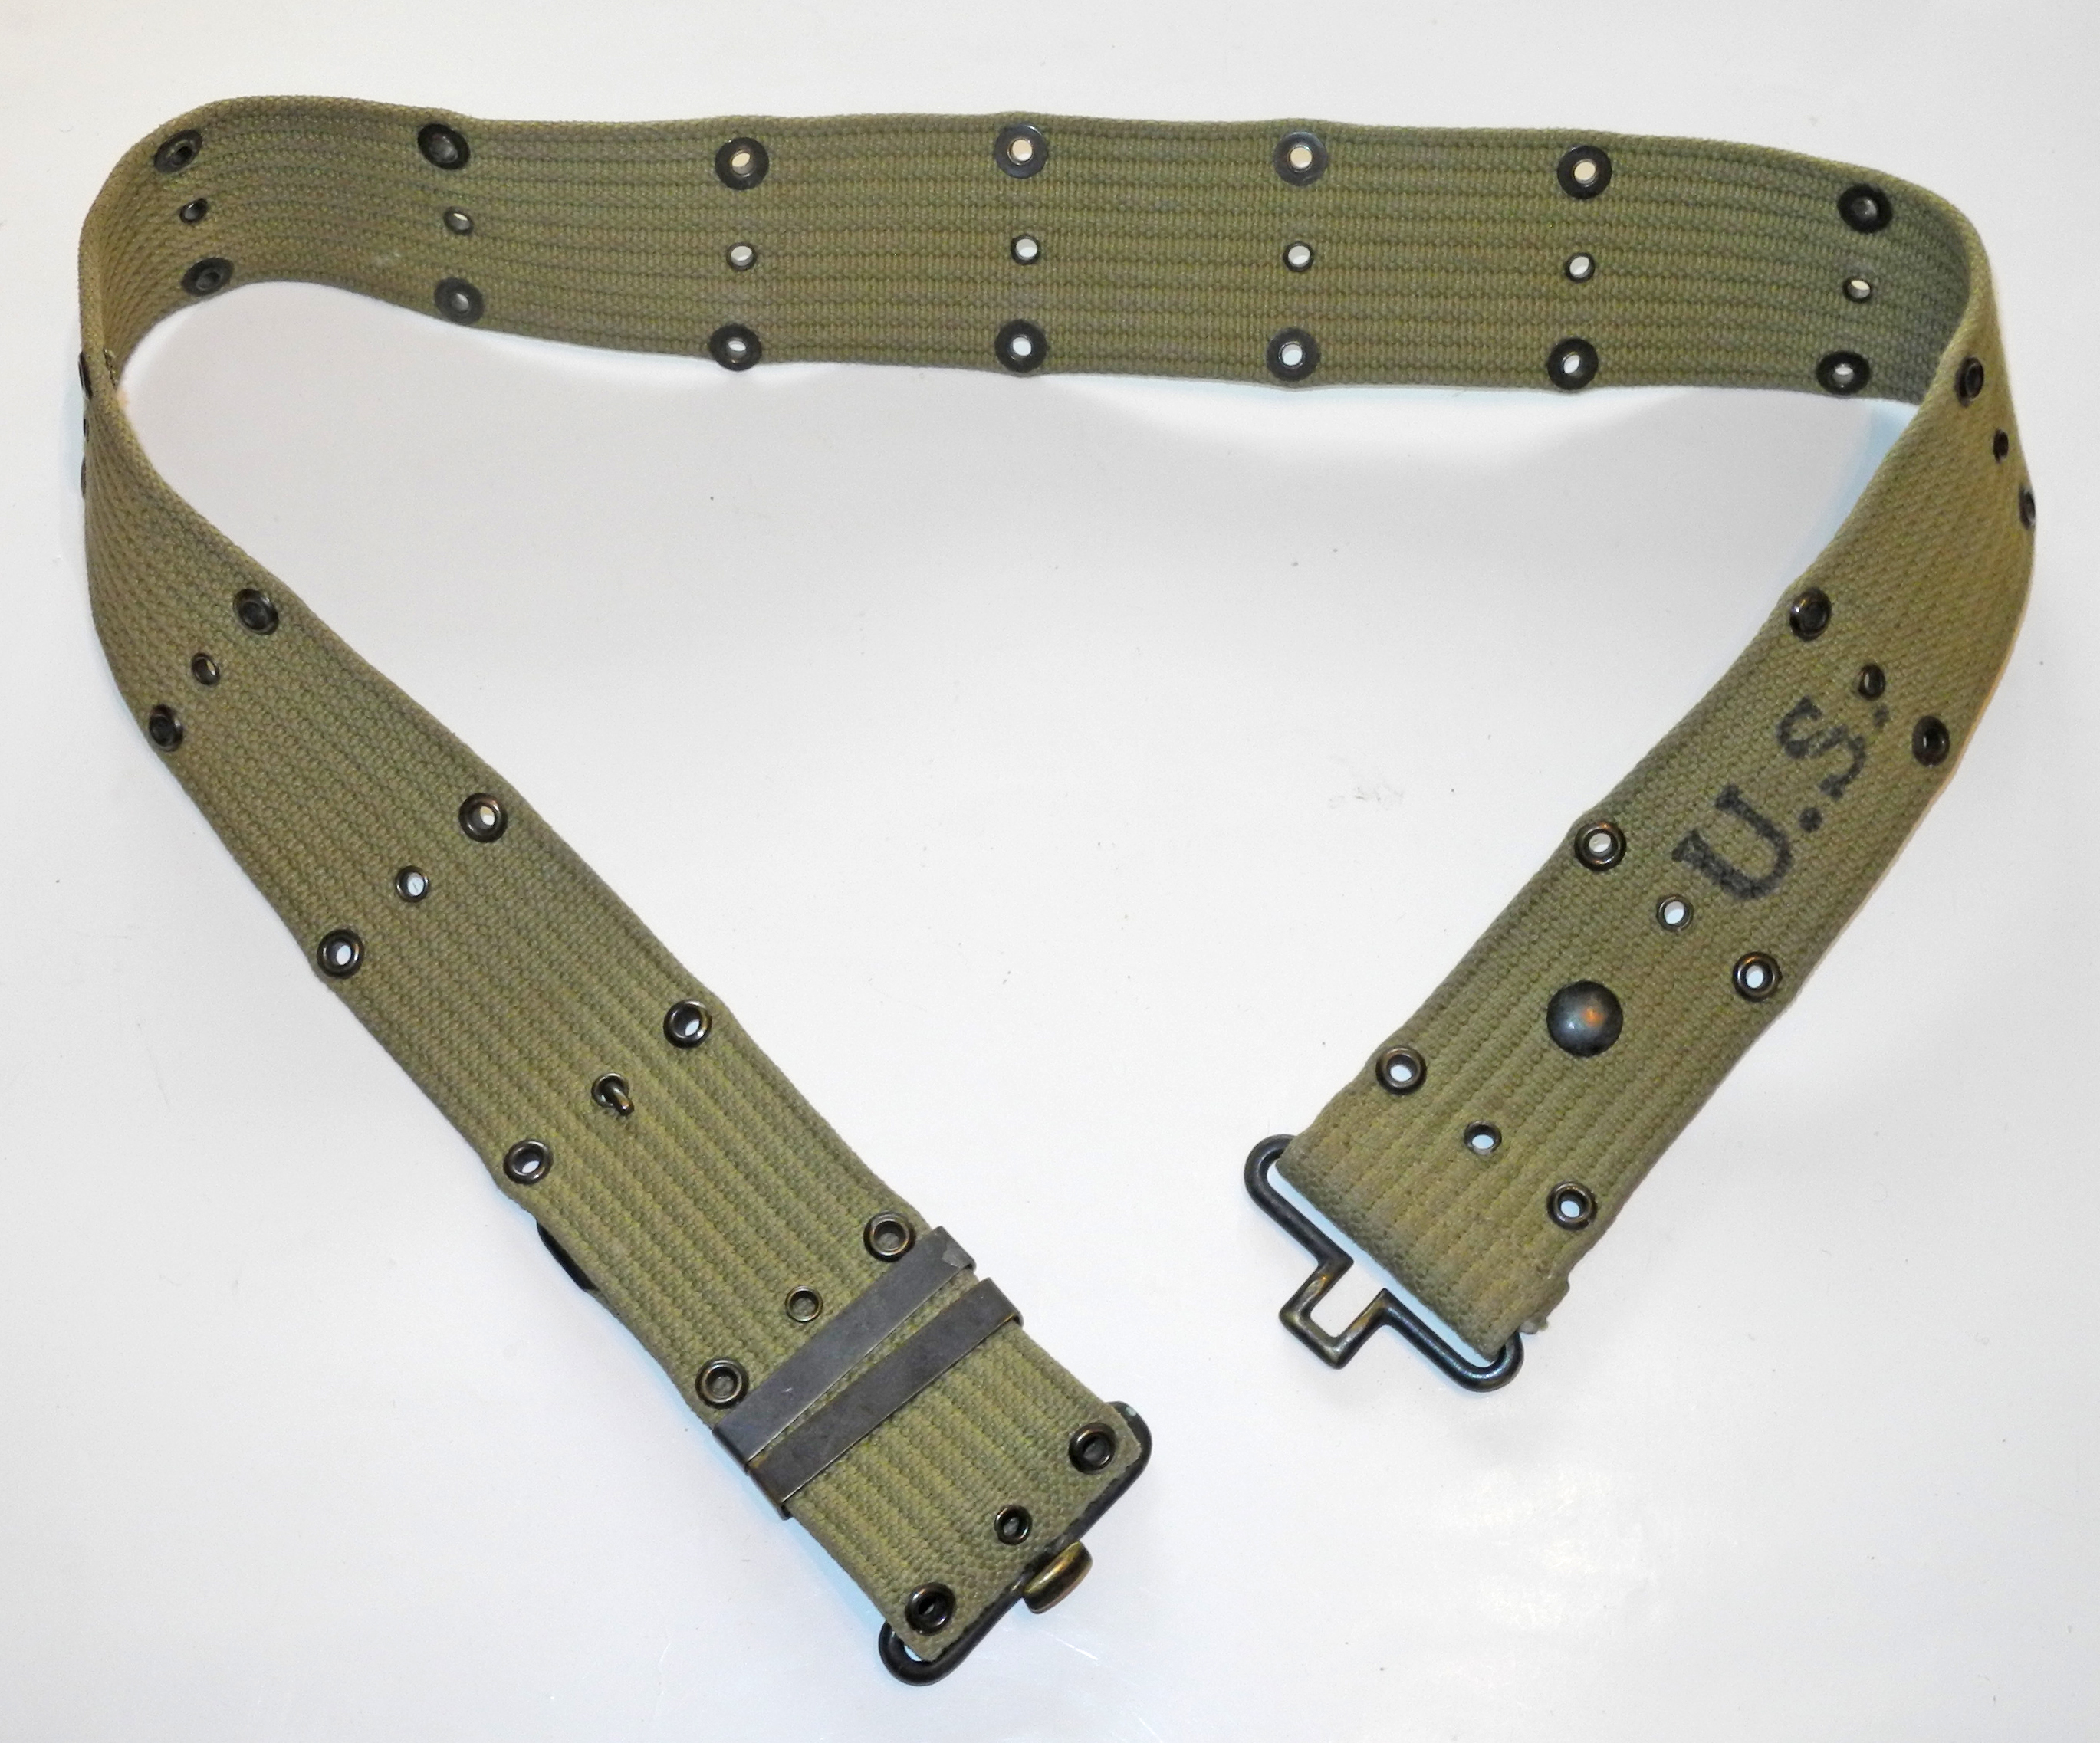 US Army WWII webbing belt